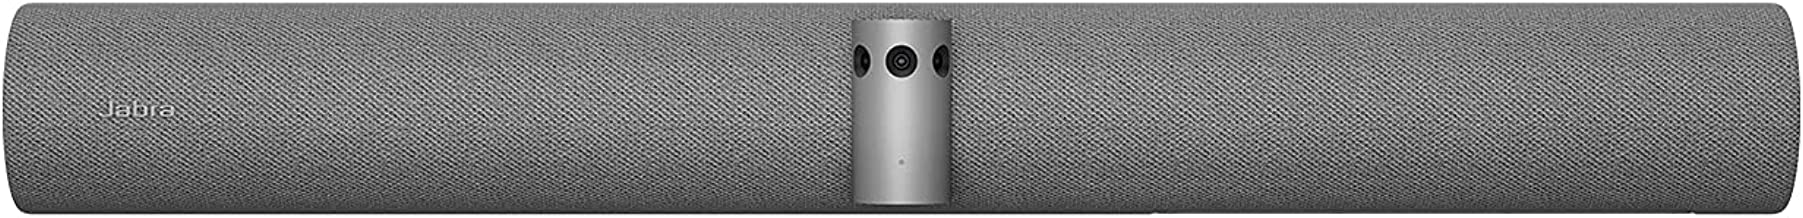 Jabra PanaCast 50 – Intelligent 180° Panoramic-4K Meeting Room Video Camera – Inclusive Video Conferencing Camera with Ful...